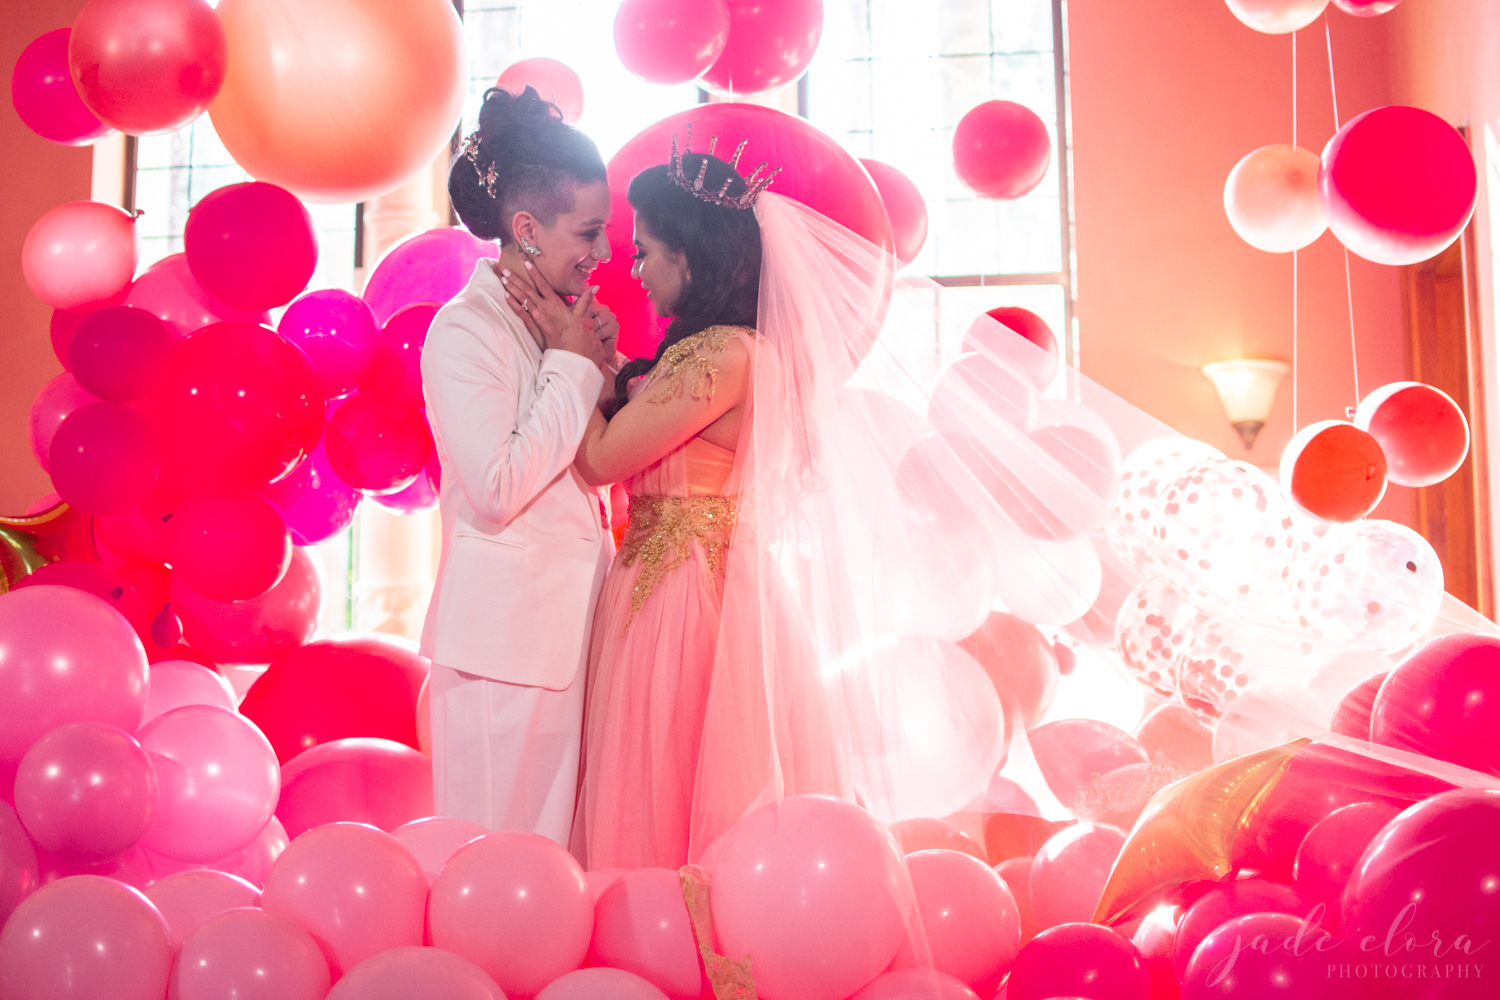 Same-Sex Brides Surrounded by Red and Pink Balloons